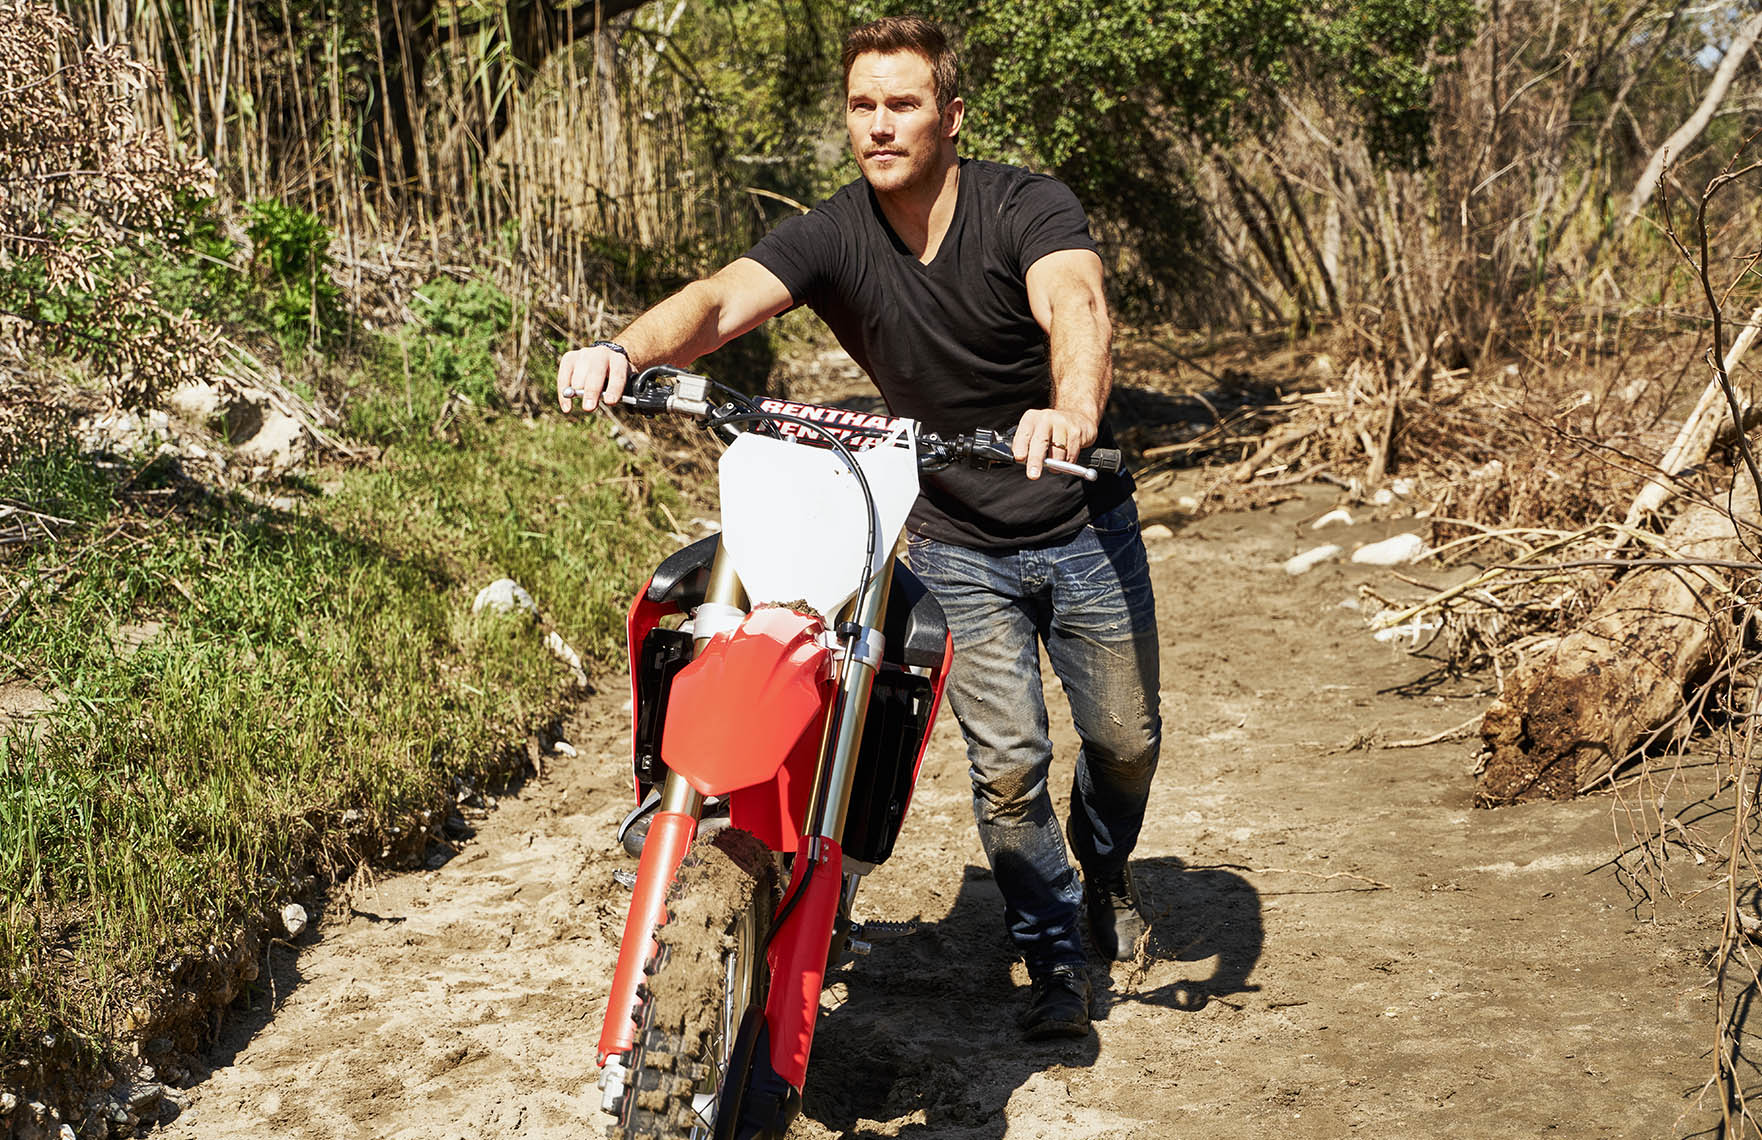 chris_pratt_mensfitness_2045-sm